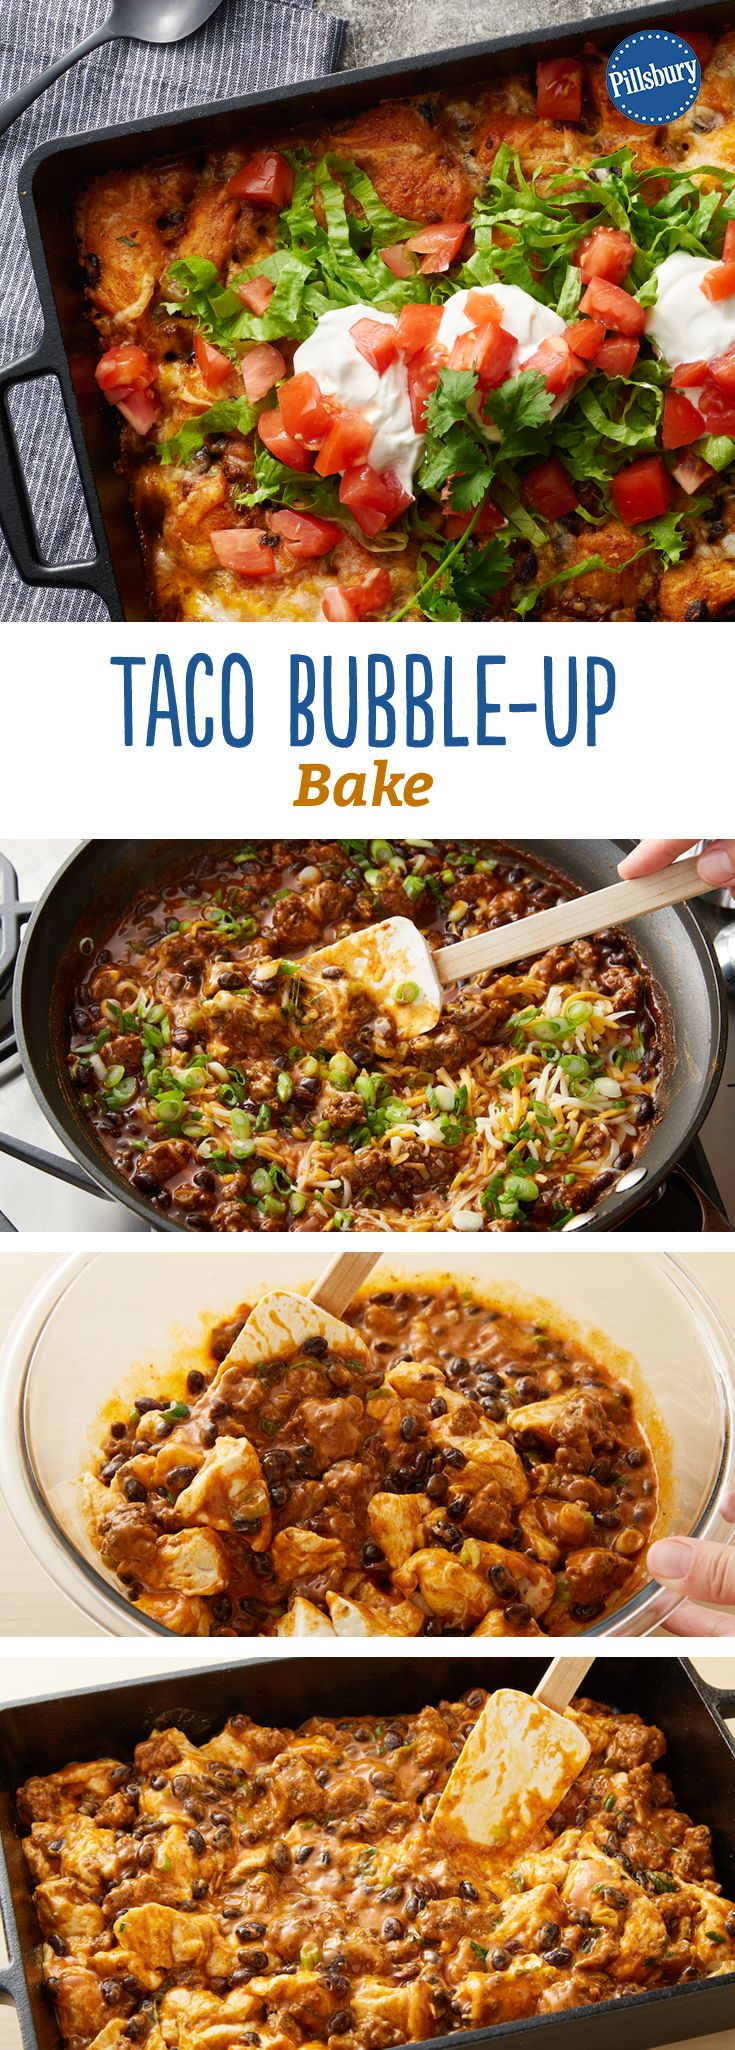 Try this easy-prep Mexican casserole with bubble-up biscuits. Add your favorite fresh toppings and dinner's done!